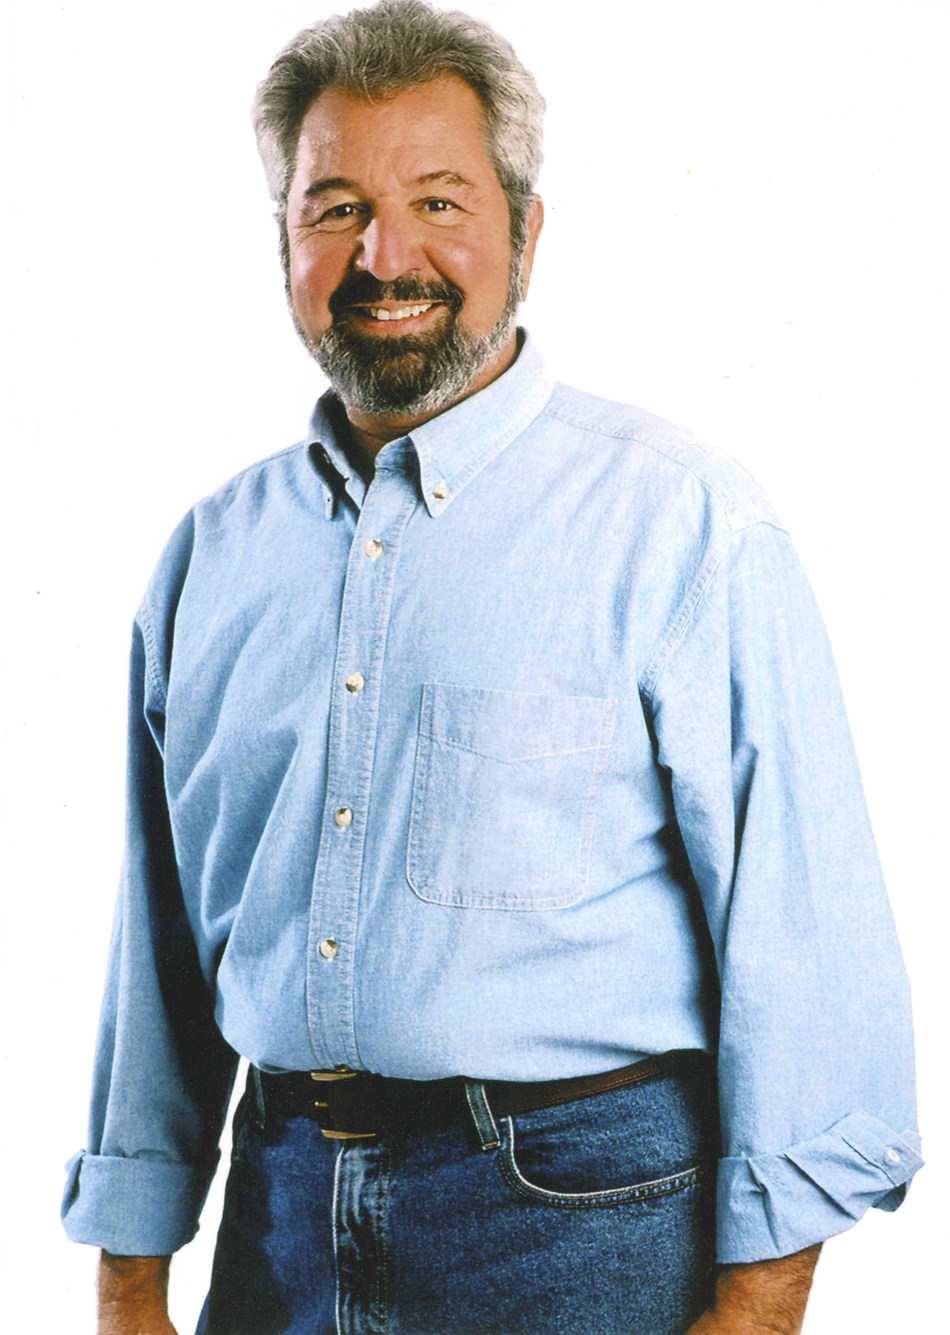 Bob Vila to speak at The Boston Architectural College commencement May 19.